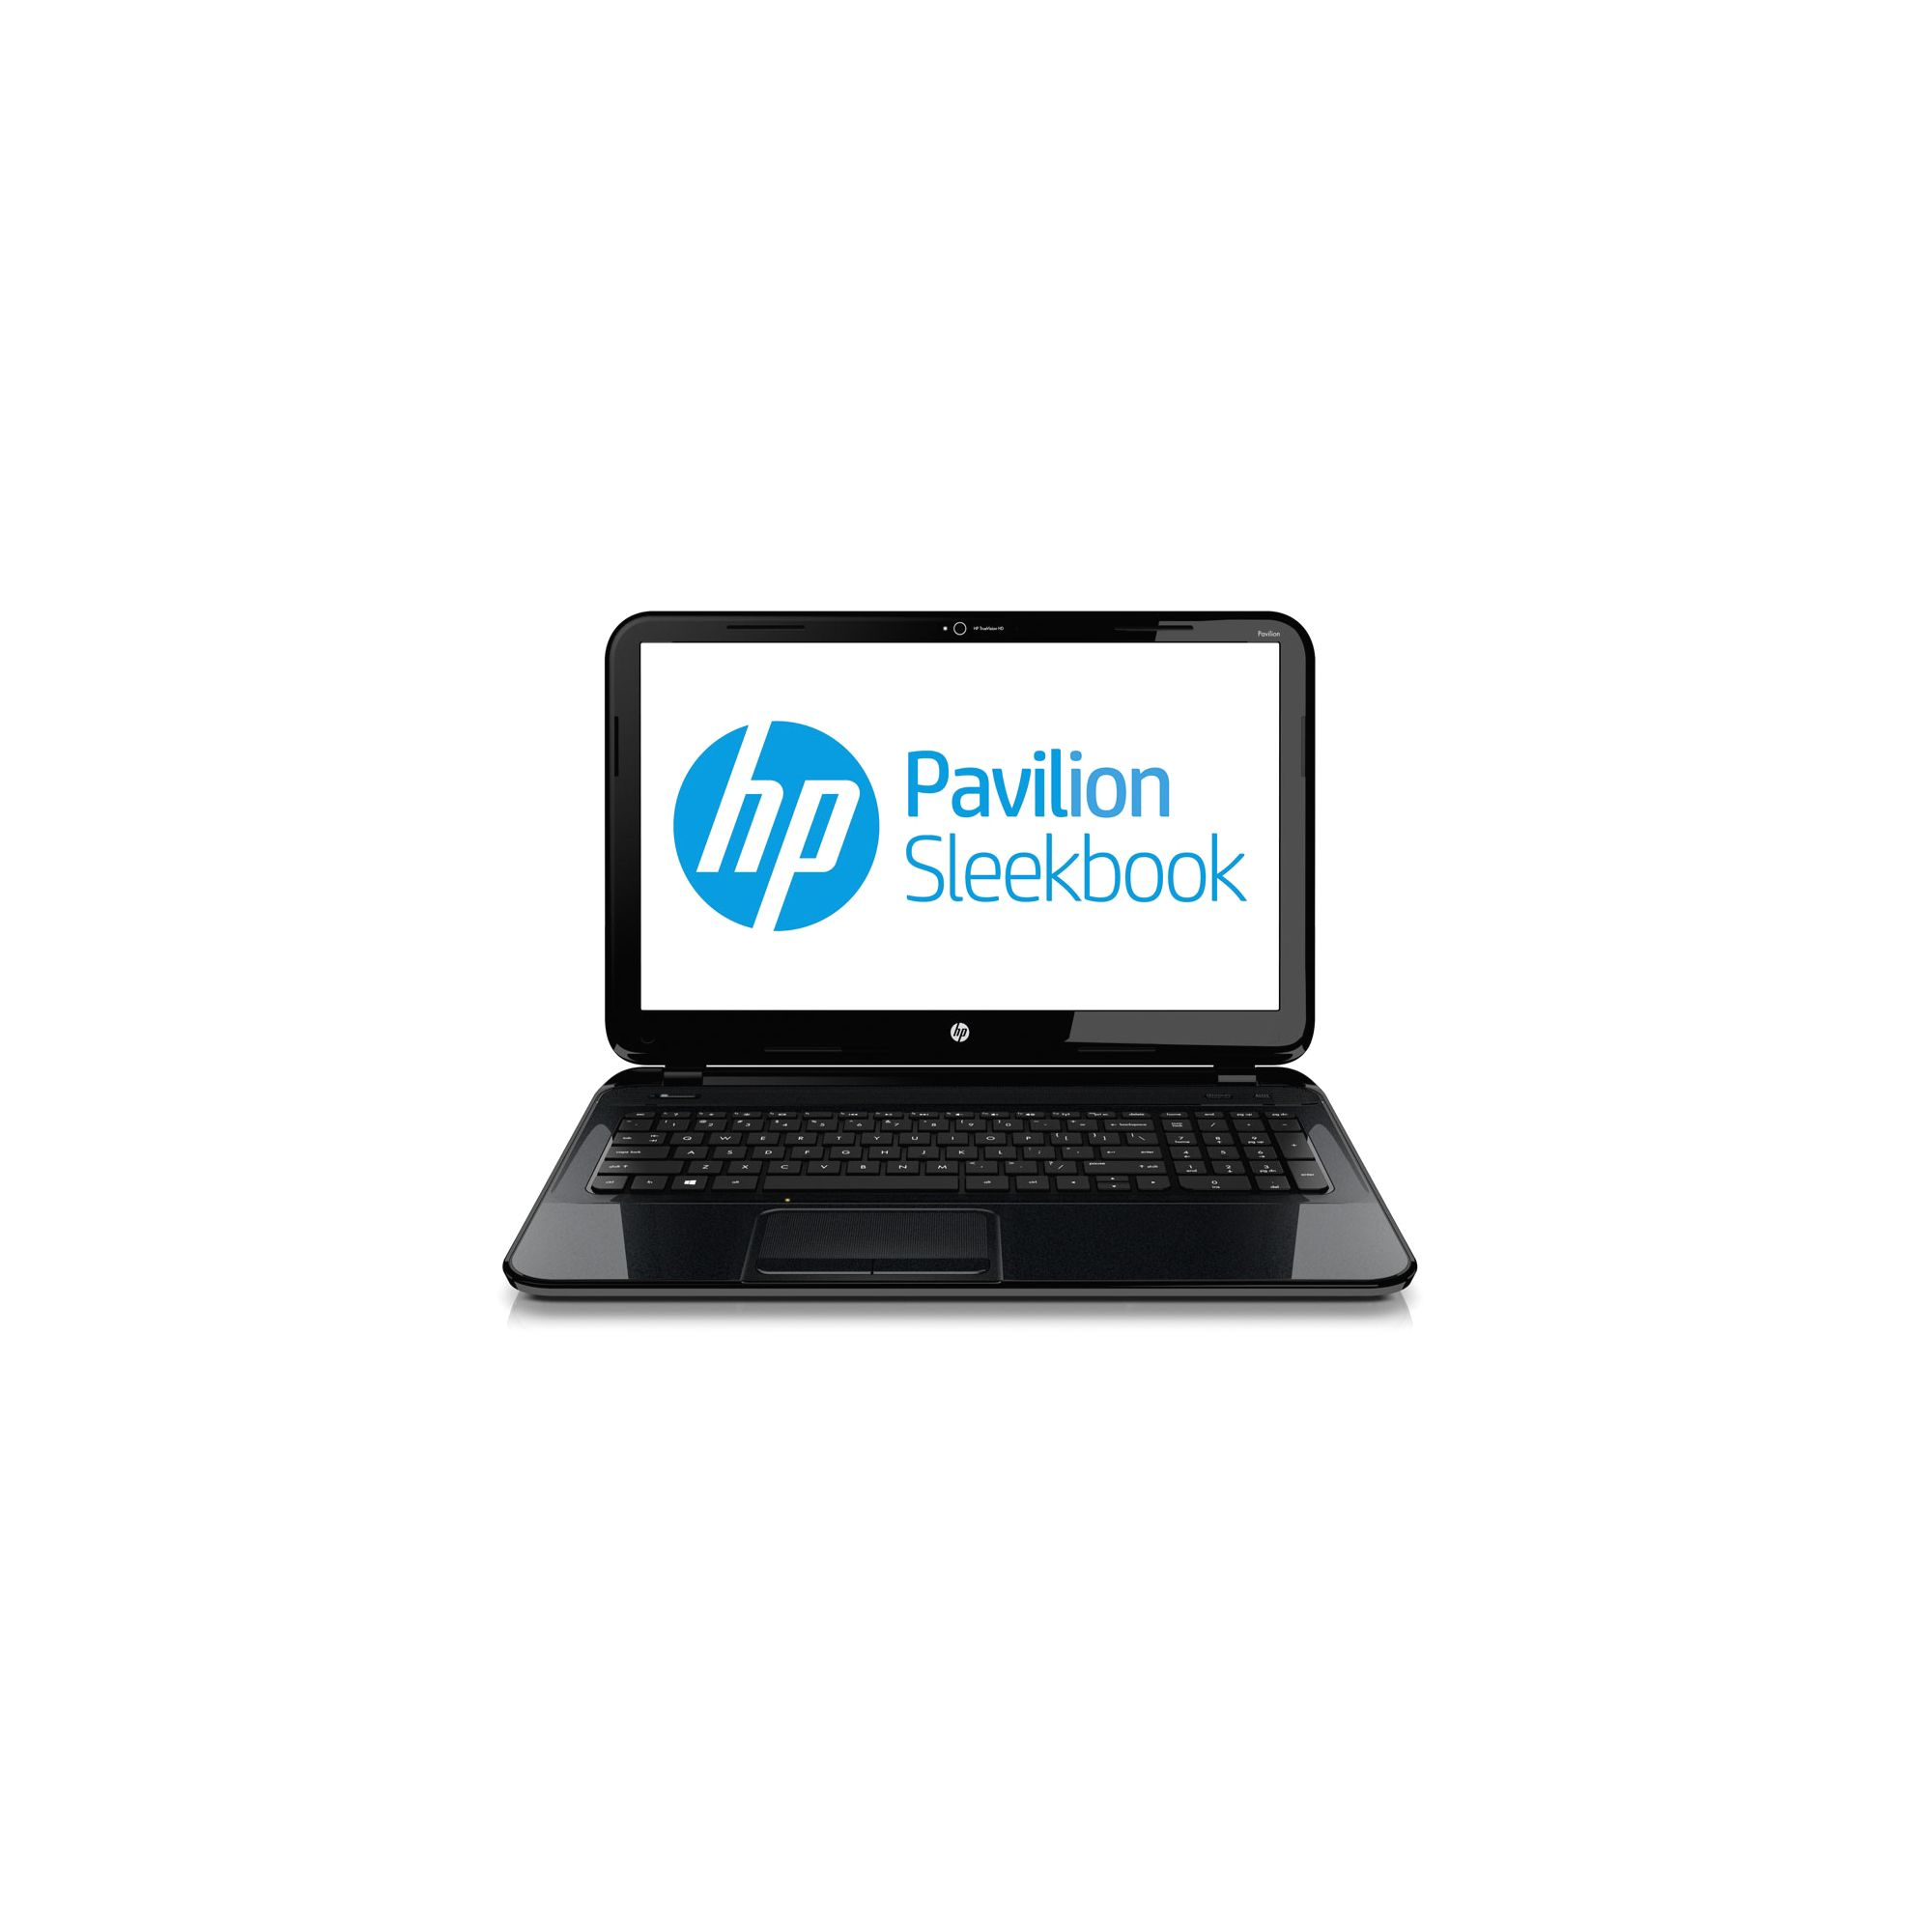 HP Pavilion 14-b001sa (14 inch) Sleekbook Core i3 (3217U) at Tesco Direct